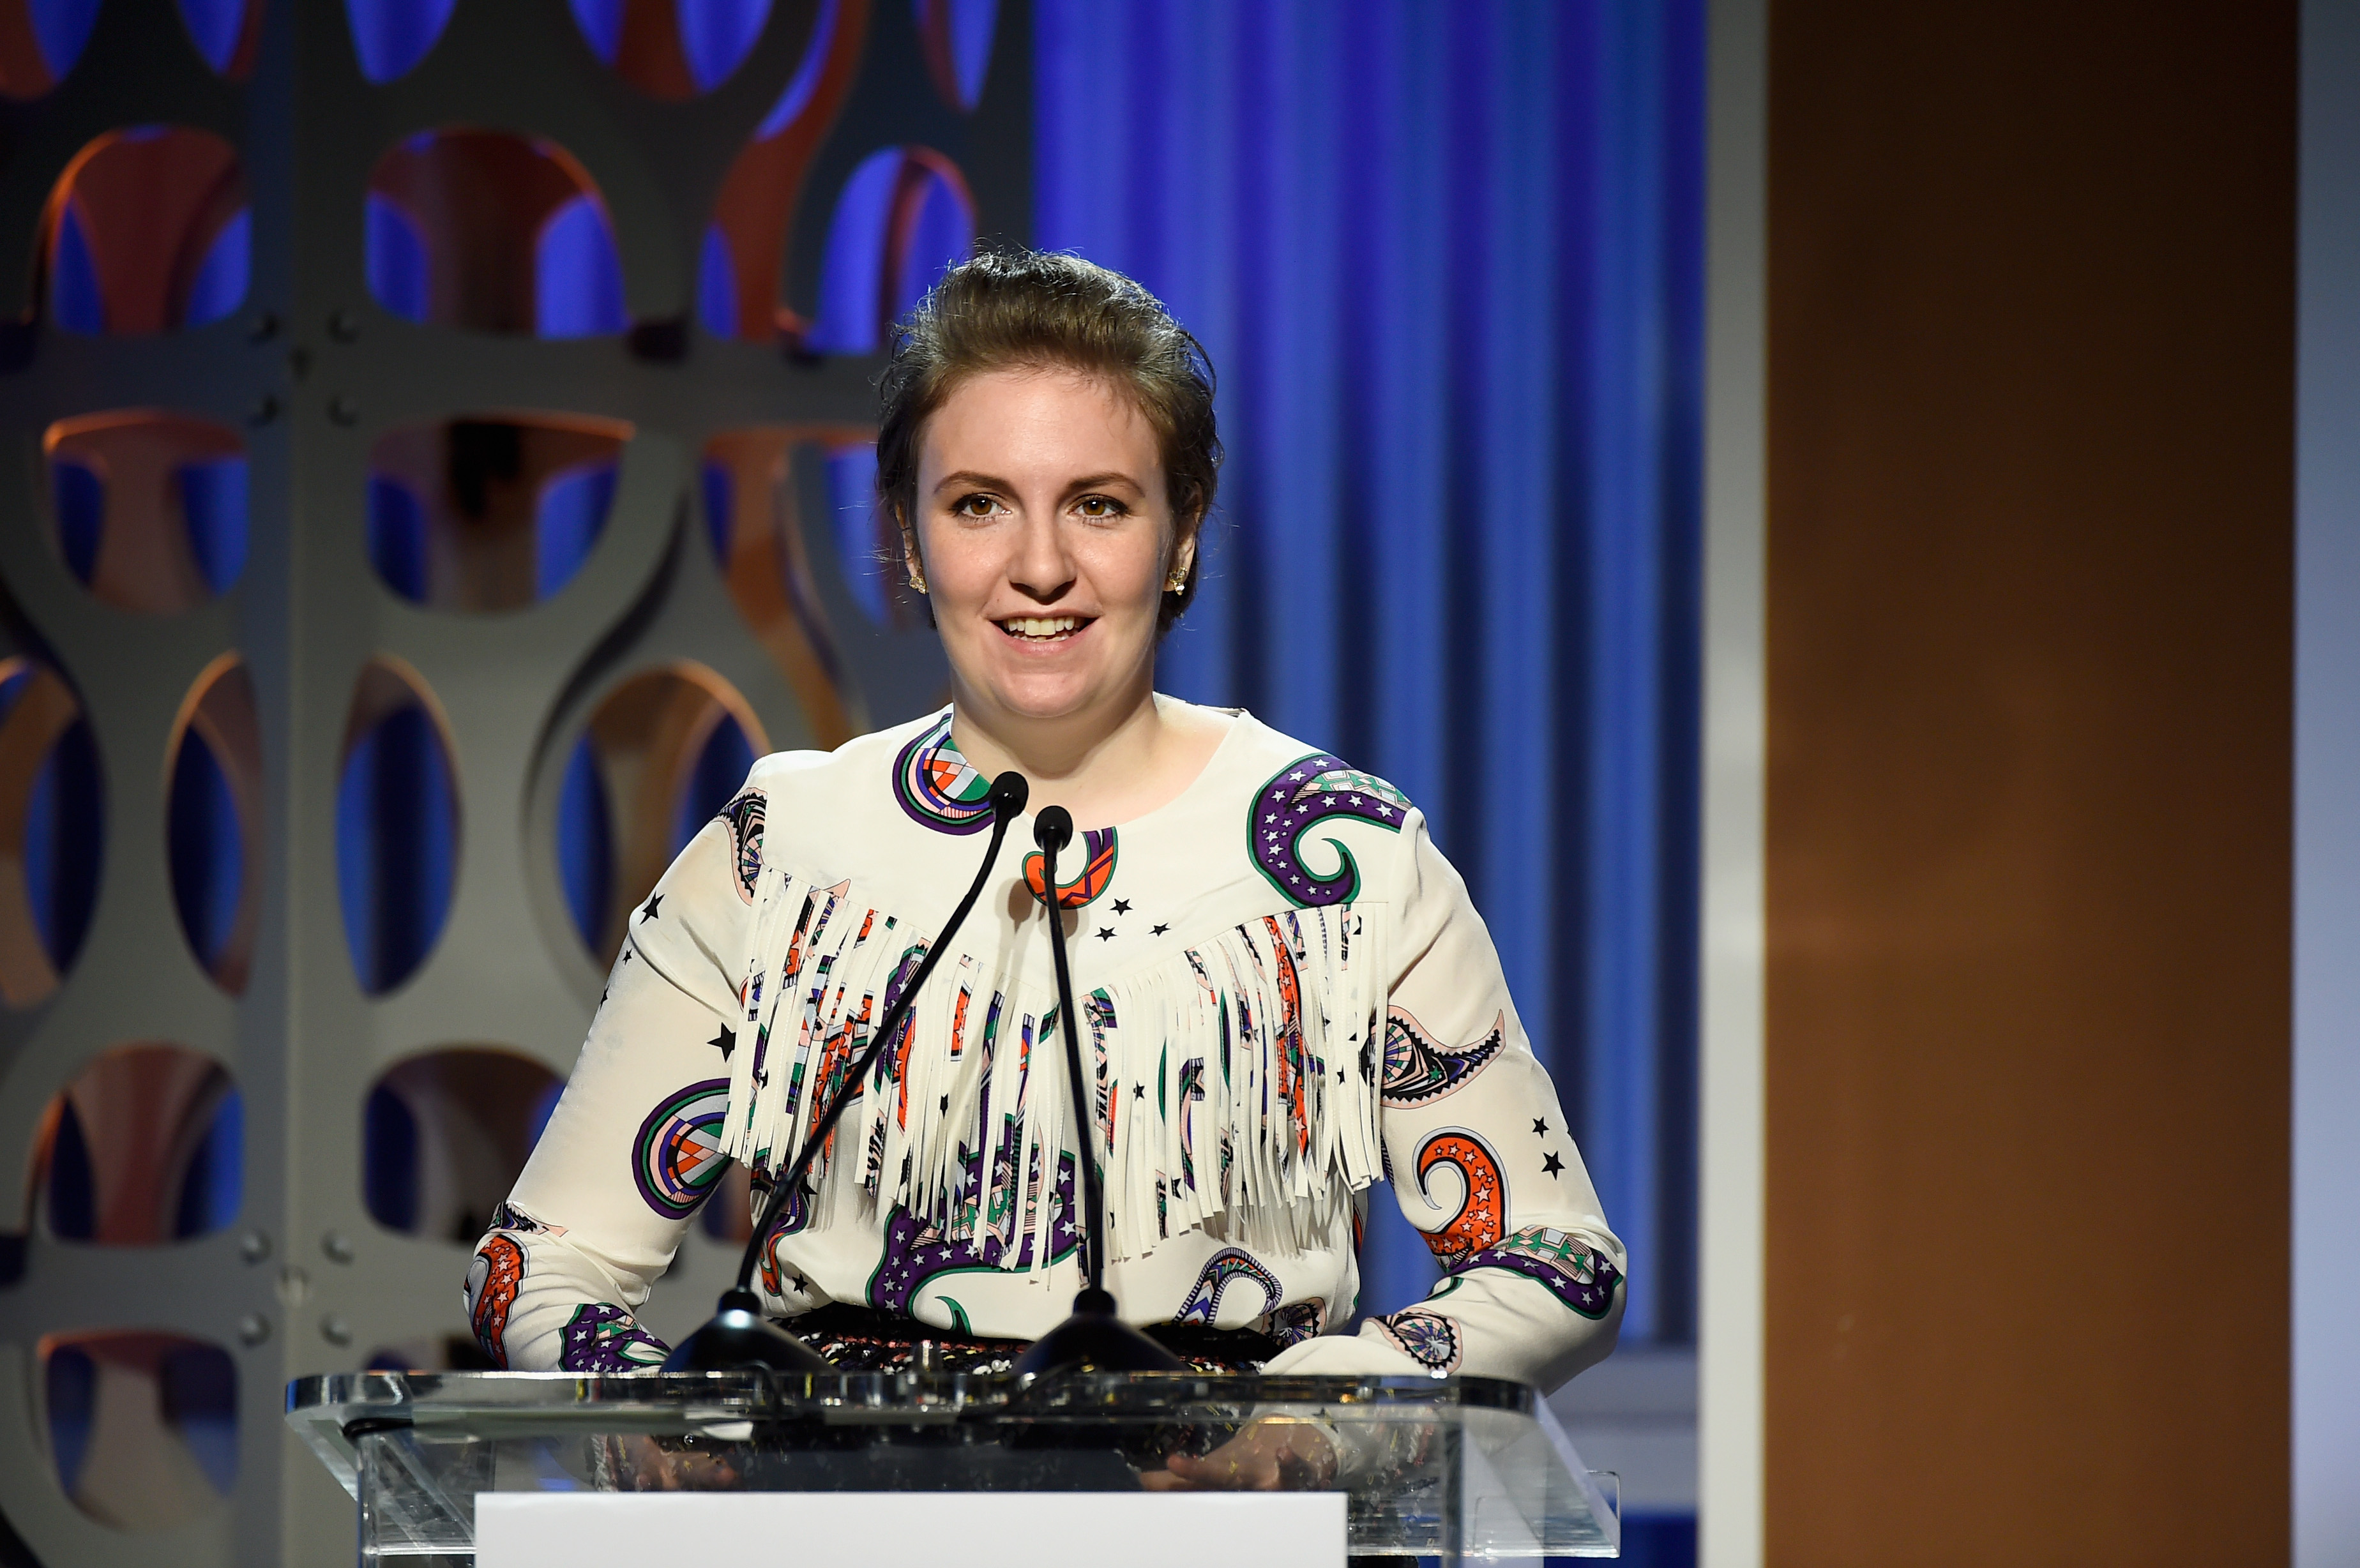 Honoree Lena Dunham delivers remarks during the annual Women in Entertainment breakfast that The Hollywood Reporter hosts in Los Angeles.